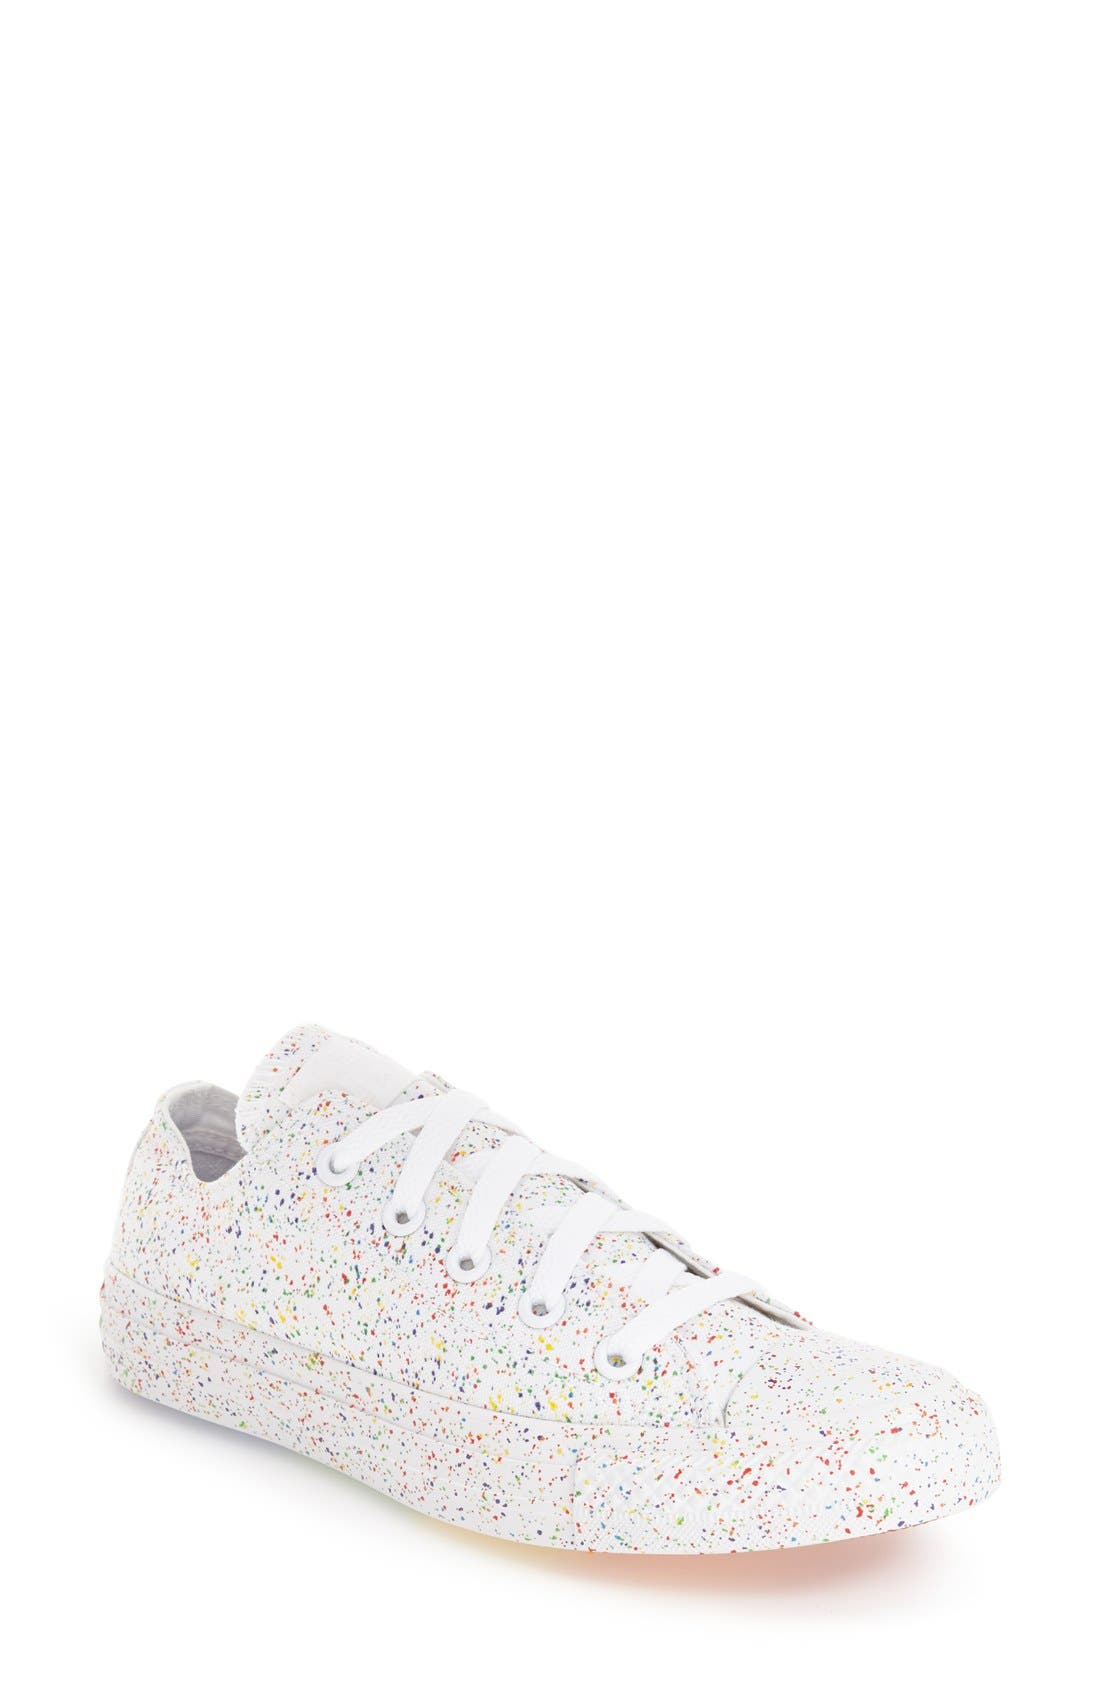 Alternate Image 1 Selected - Converse Chuck Taylor® All Star® 'Pride' Sneaker (Women)